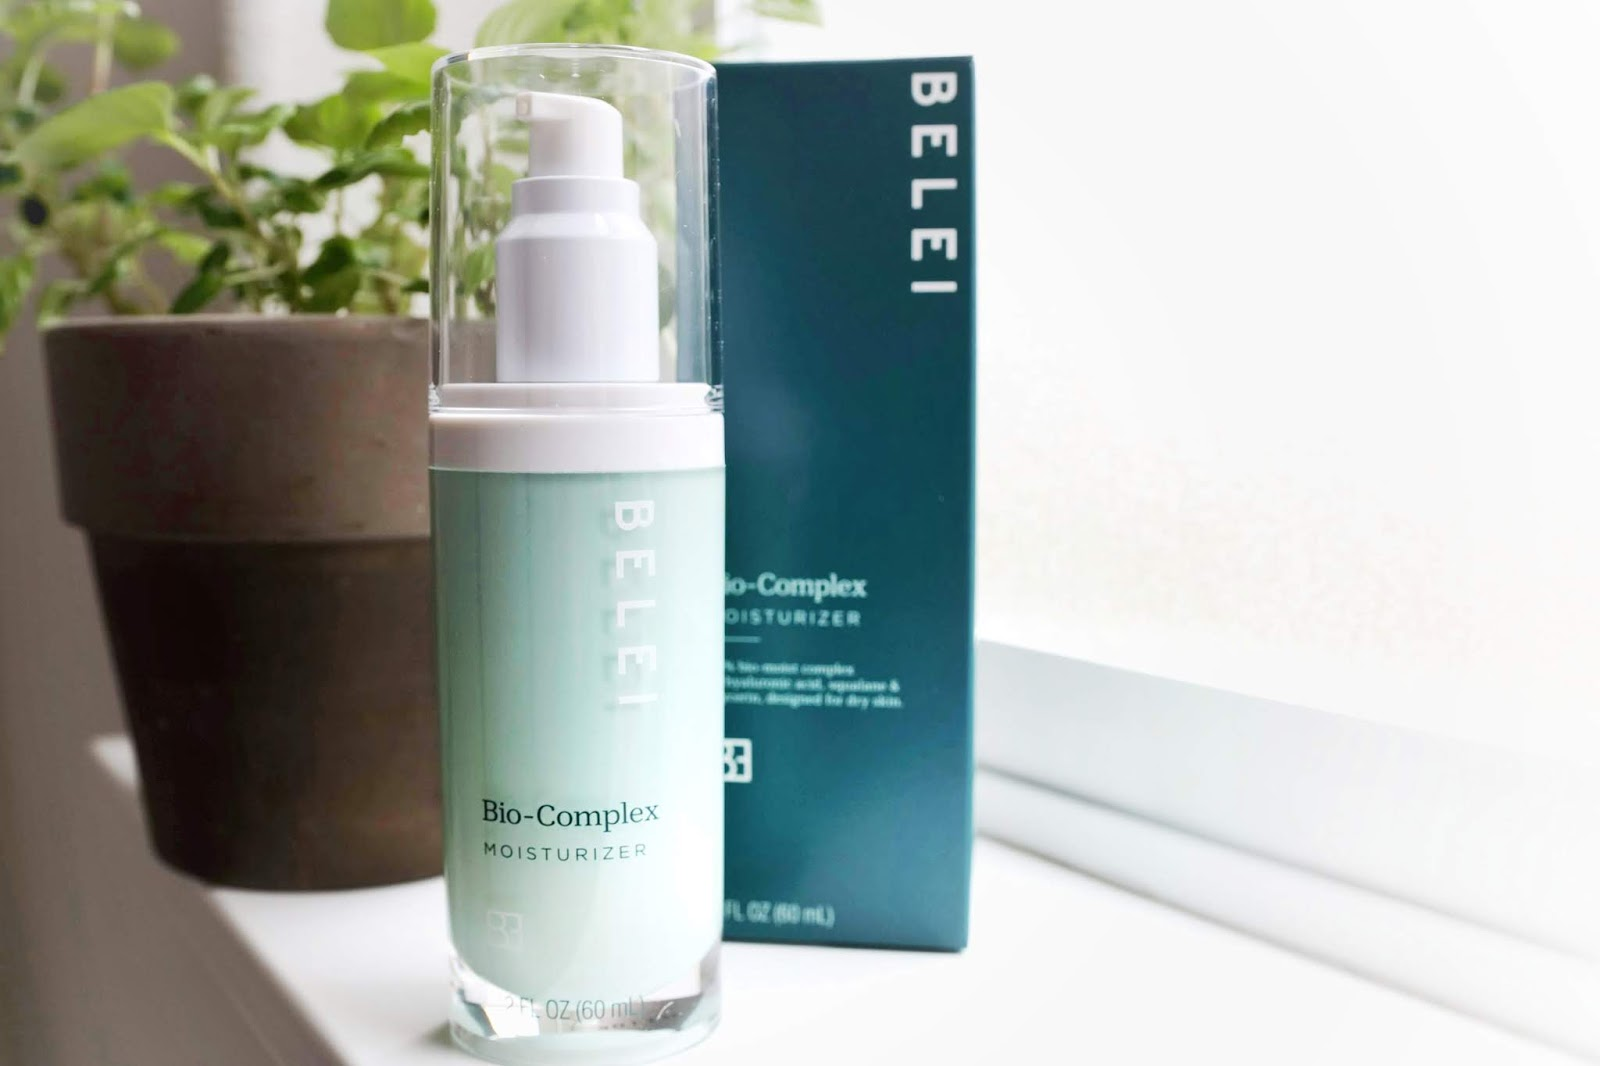 hyaluronic acid serum bio-complex moisturizer for dry skin review skincare guru makeup beauty